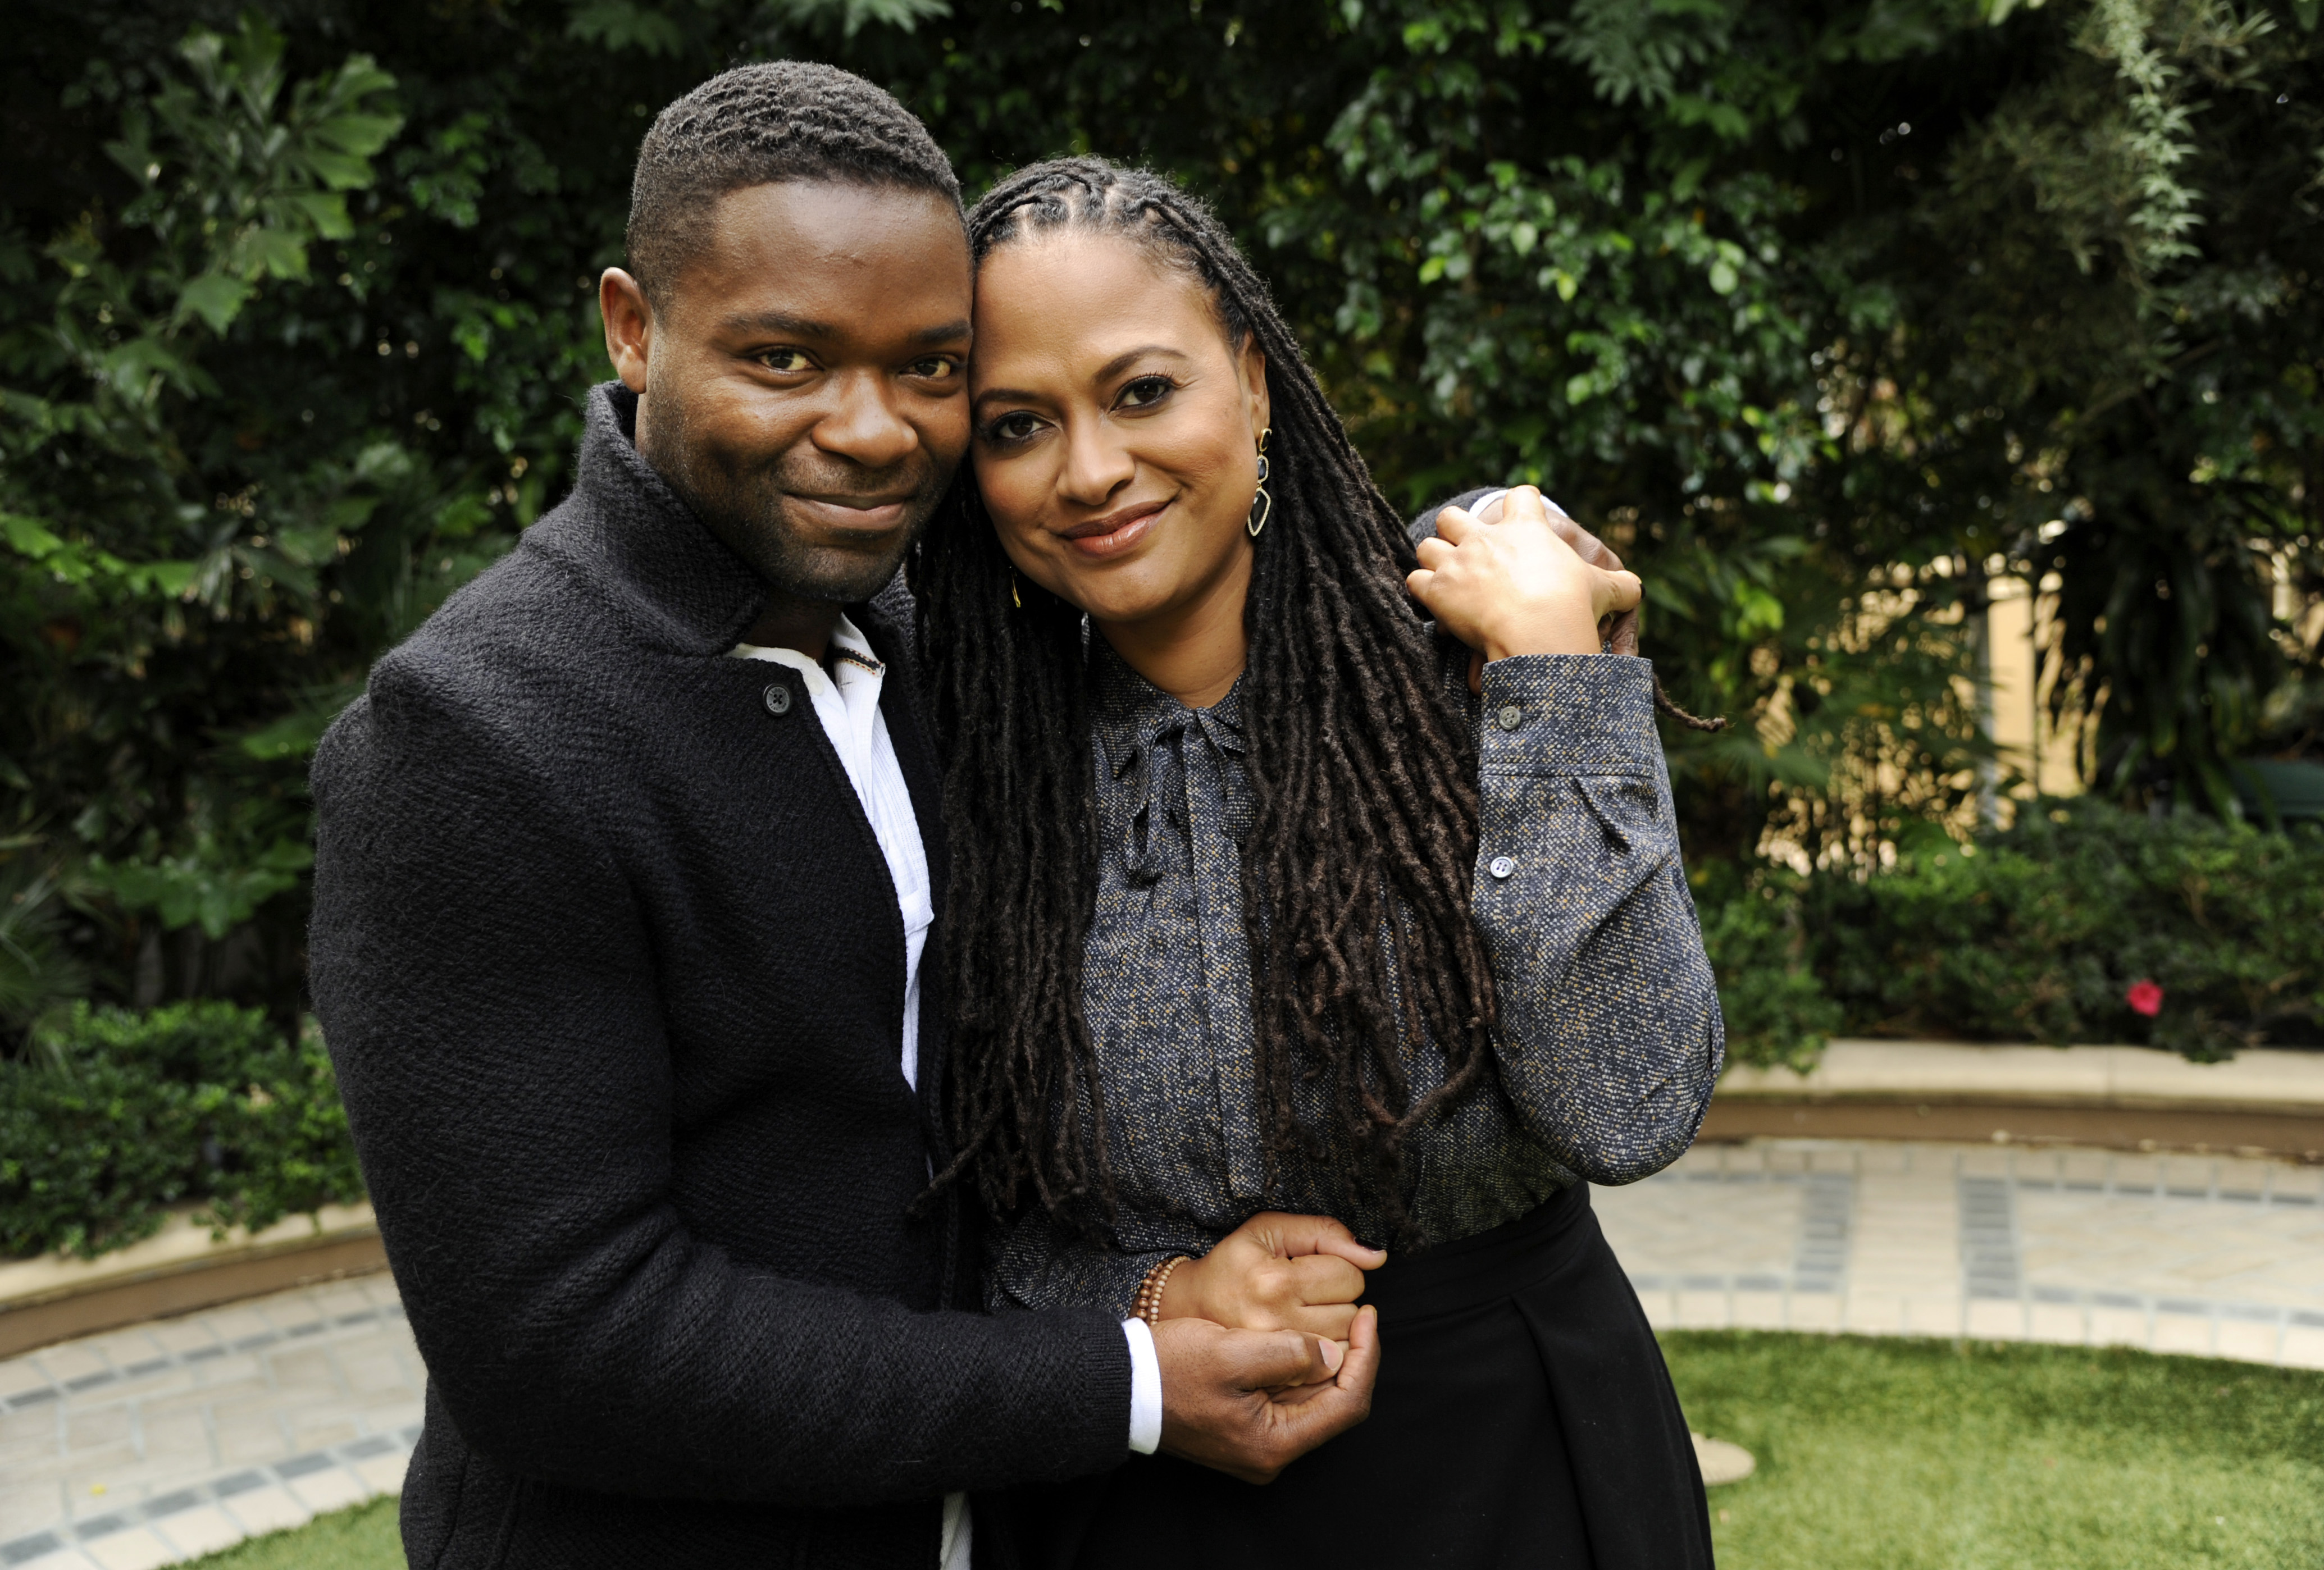 Ava DuVernay, right, director of the film  Selma,  and cast member David Oyelowo pose together at the Four Seasons Hotel on Wednesday, Nov. 12, 2014, in Beverly Hills, Calif. (Photo by Chris Pizzello/Invision/AP)